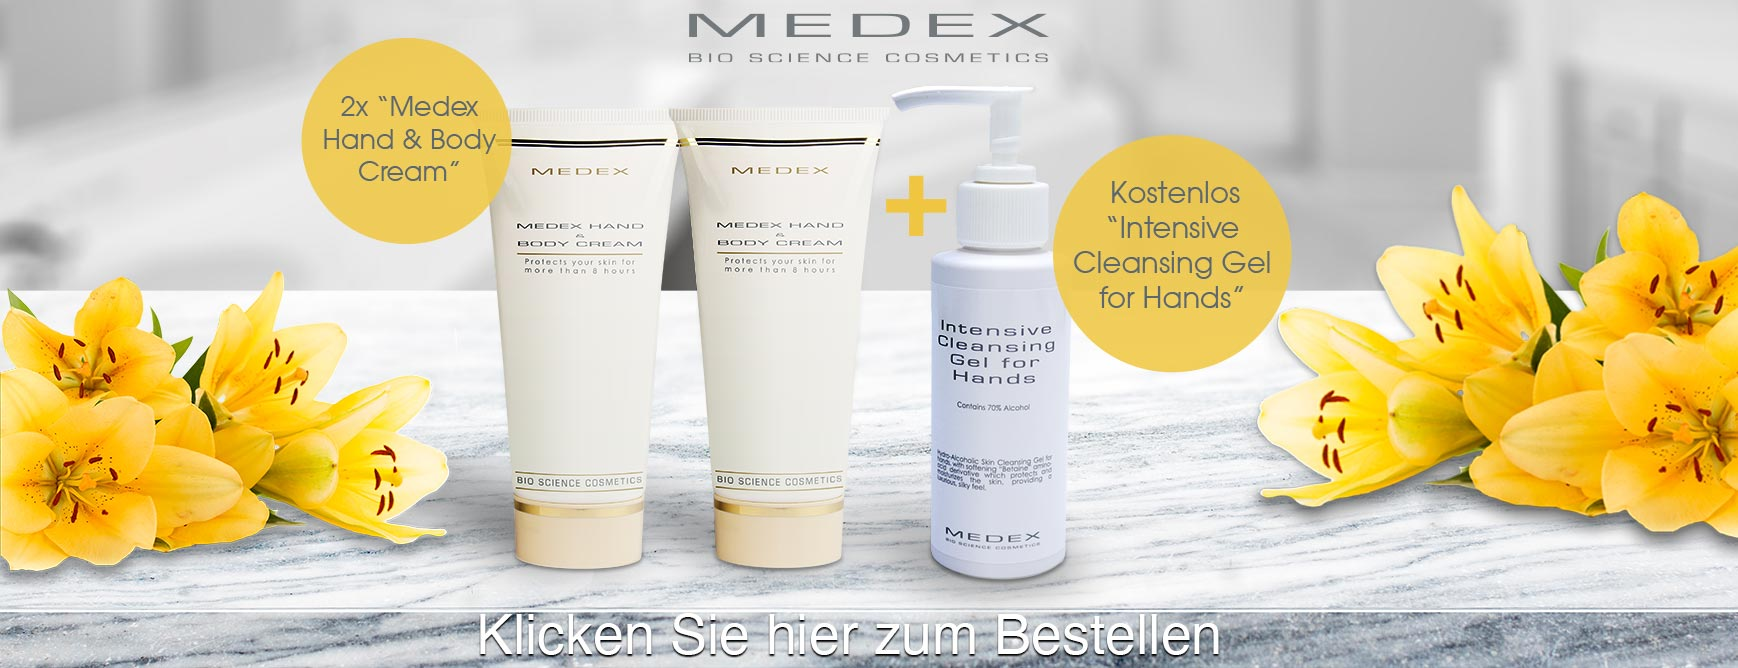 Medex Bio Science Cosmetics - Intensive Cleansing Gel for Hands (70% alcohol) + 2 x Hand & Body Cream